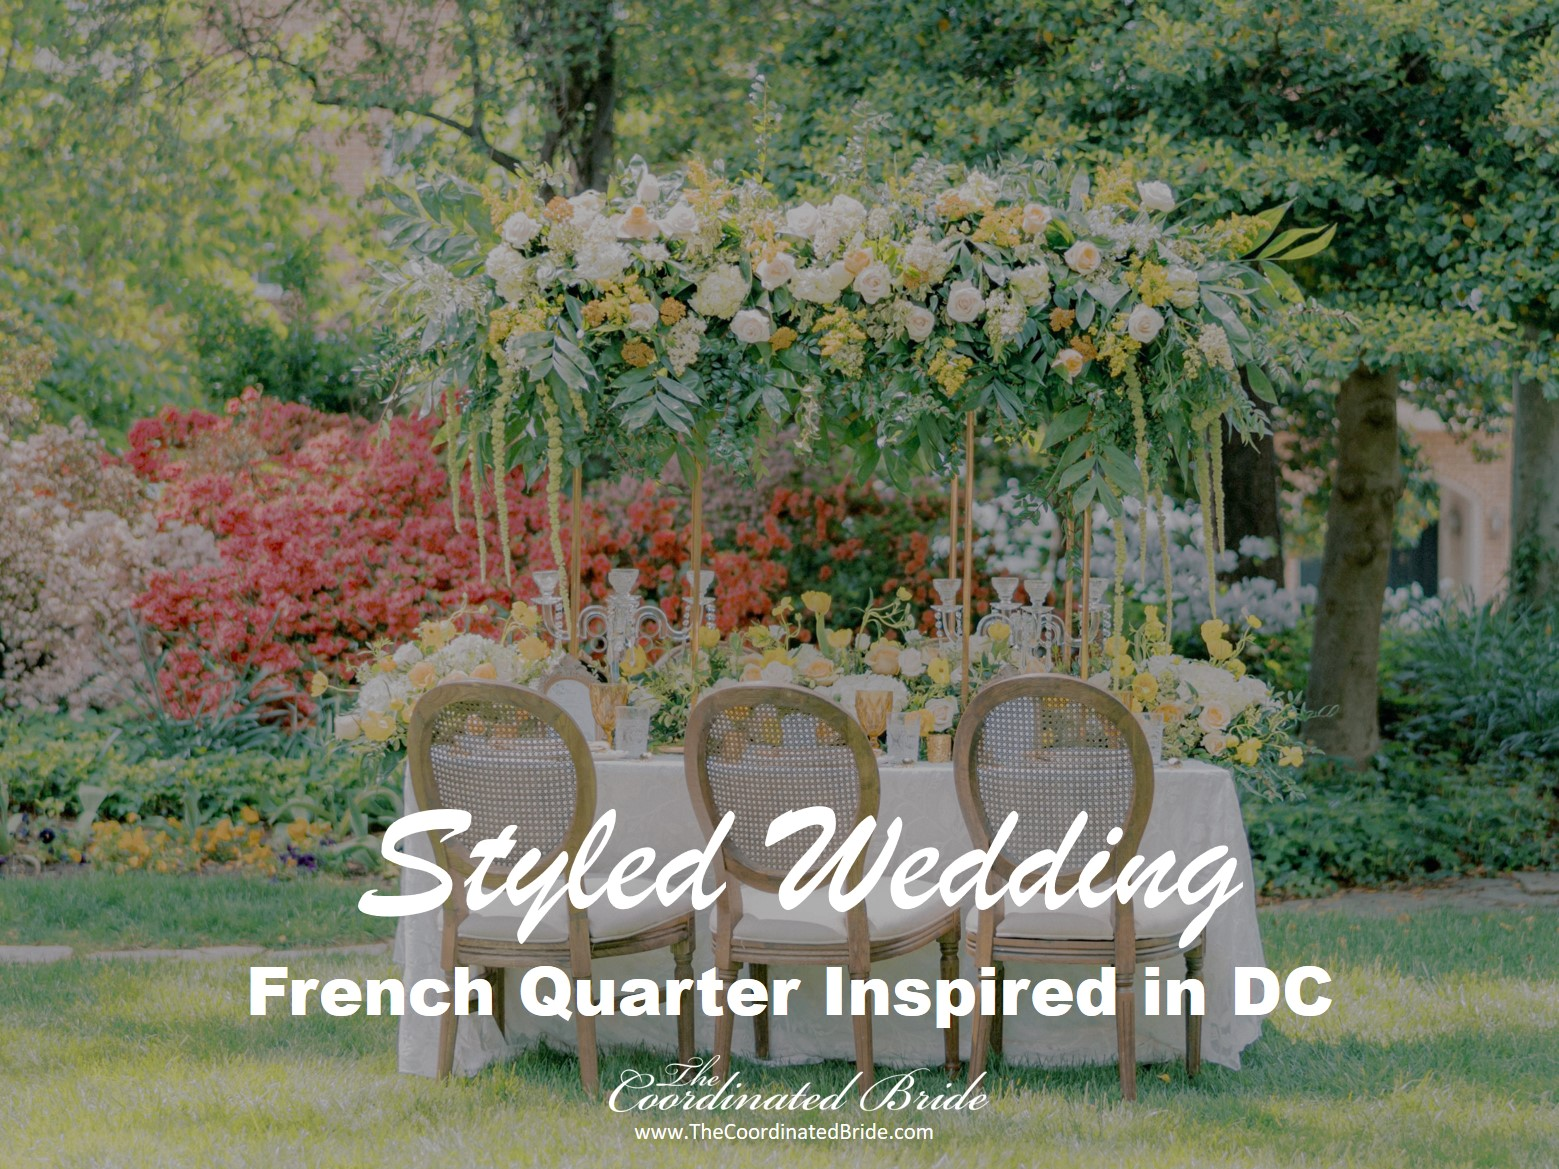 French Quarter Inspired Styled Wedding in D.C. Using Pantone's 2021 Colors